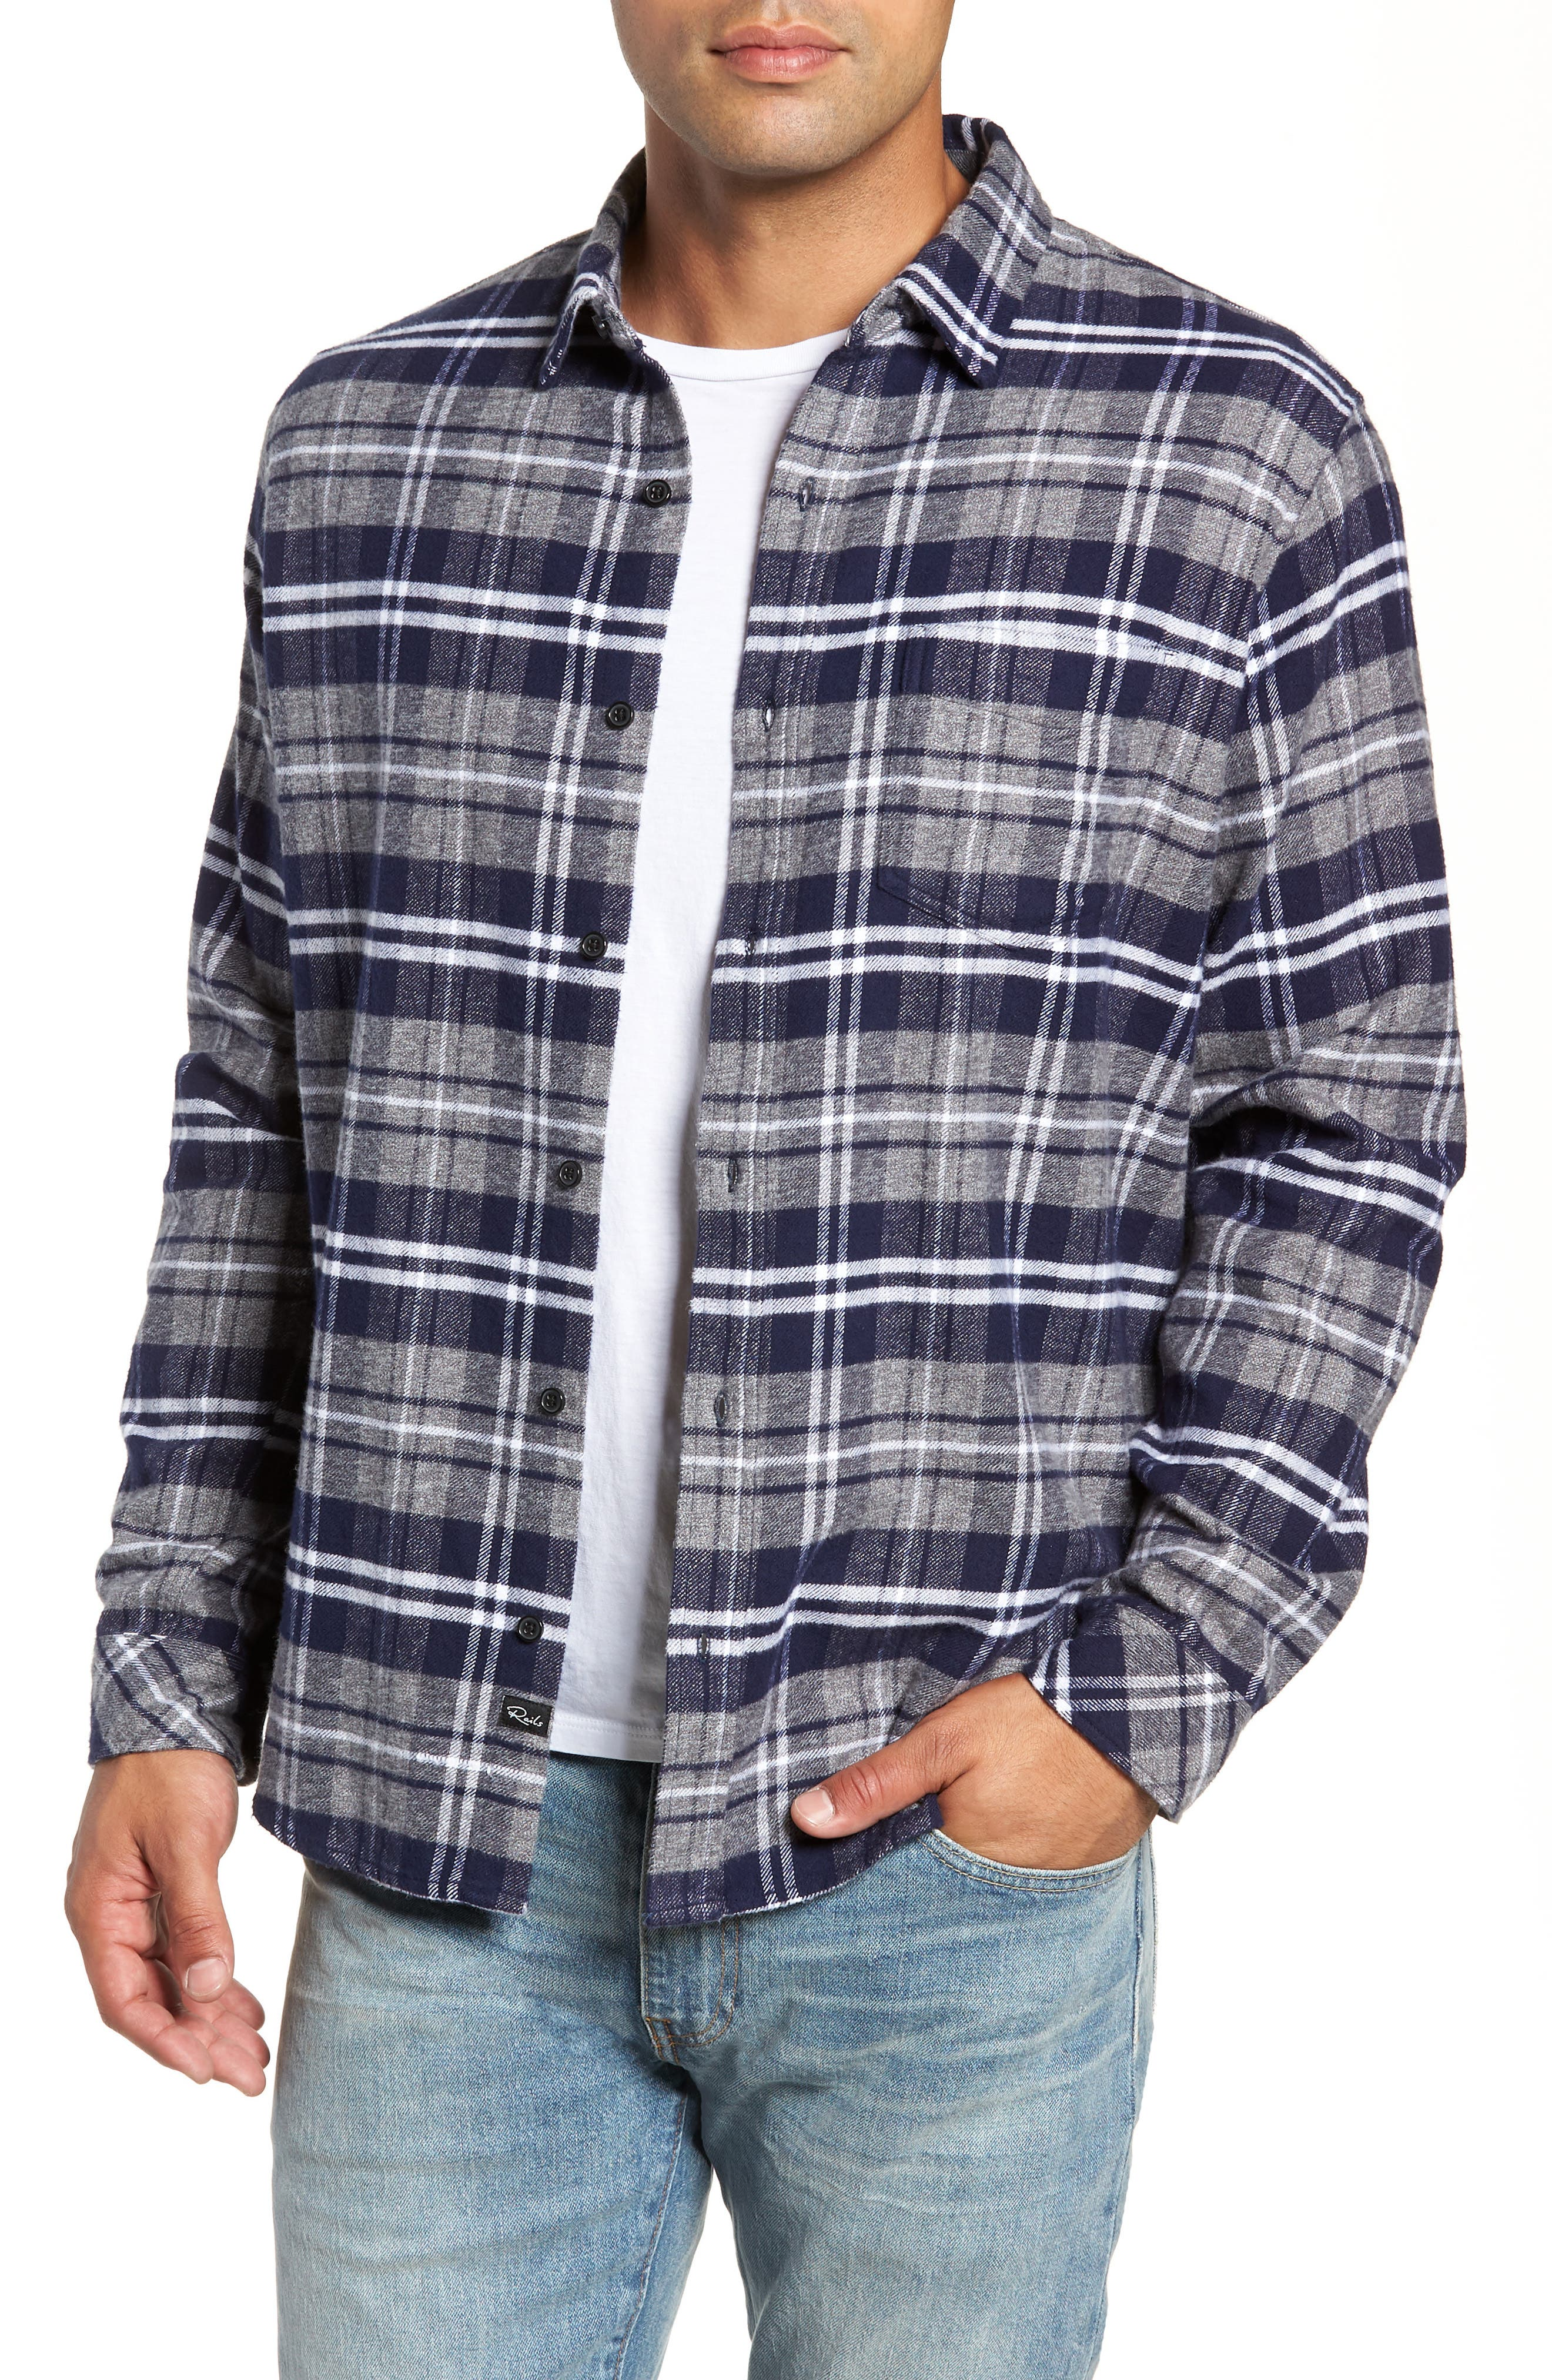 Forrest Slim Fit Plaid Flannel Sport Shirt,                         Main,                         color, NAVY/LIGHT GREY/WHITE